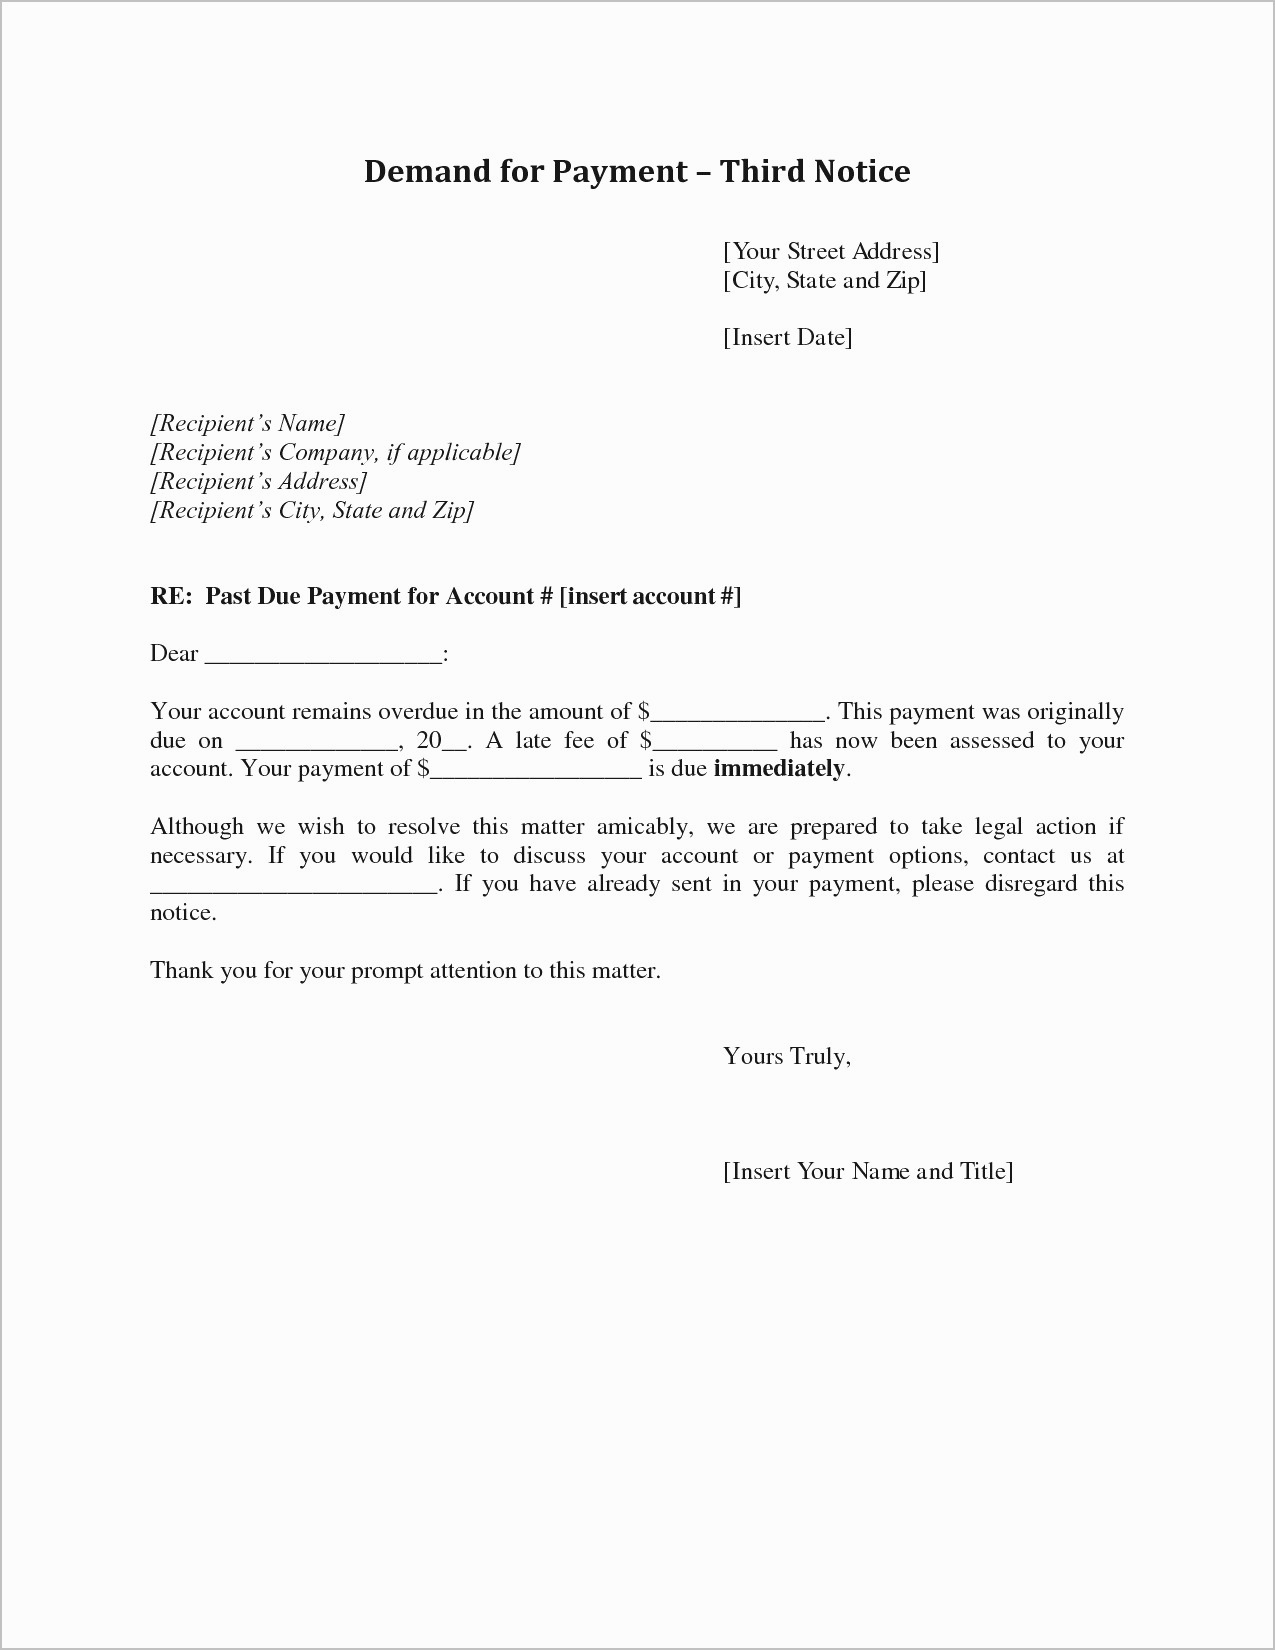 10 Day Demand Letter Template - Sample Demand Letter for Unpaid Rent Beautiful Receipt This Letter